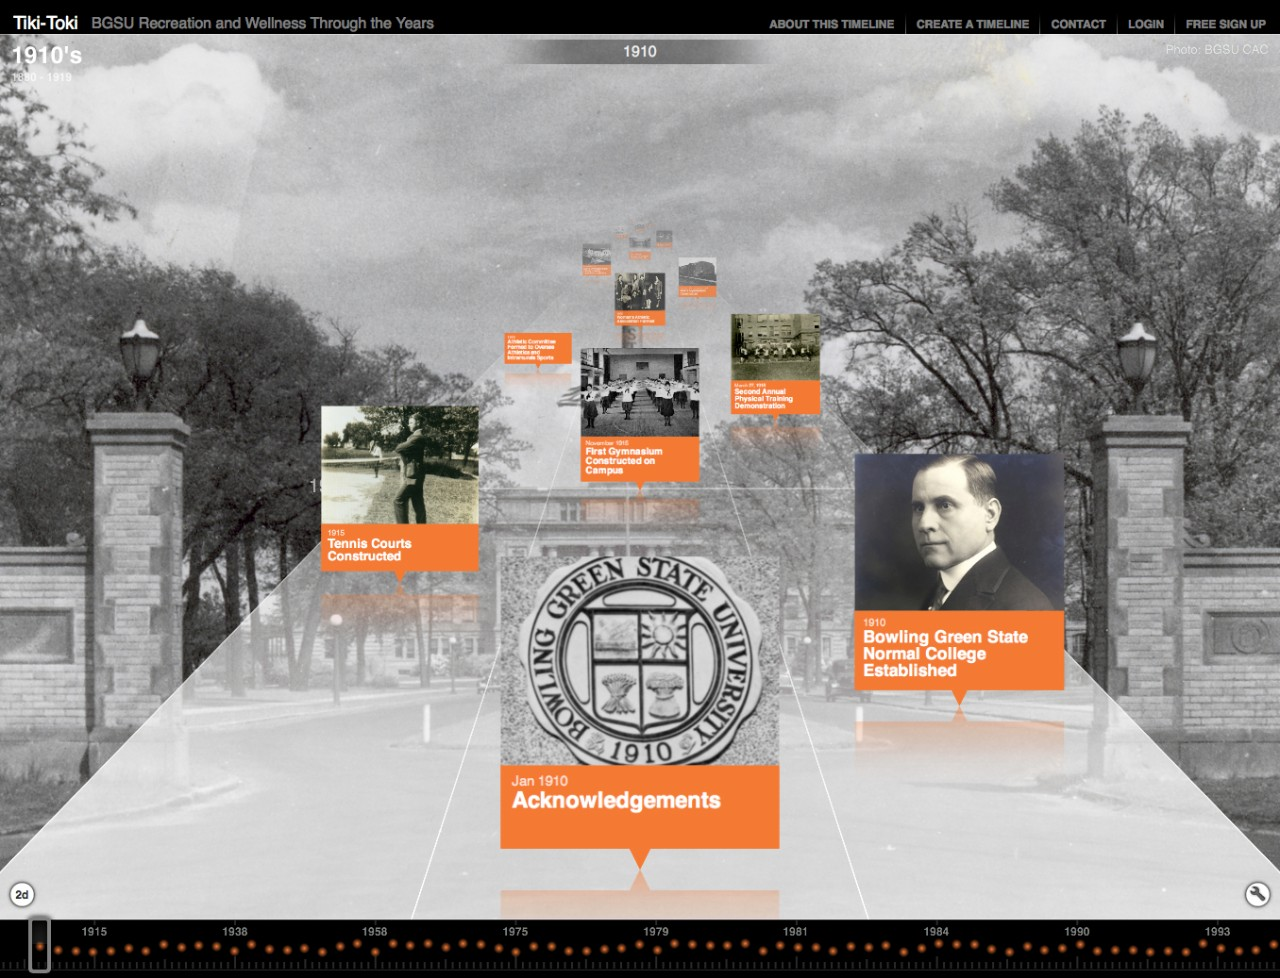 BGSU Recreation and Wellness Through the Years digital timeline